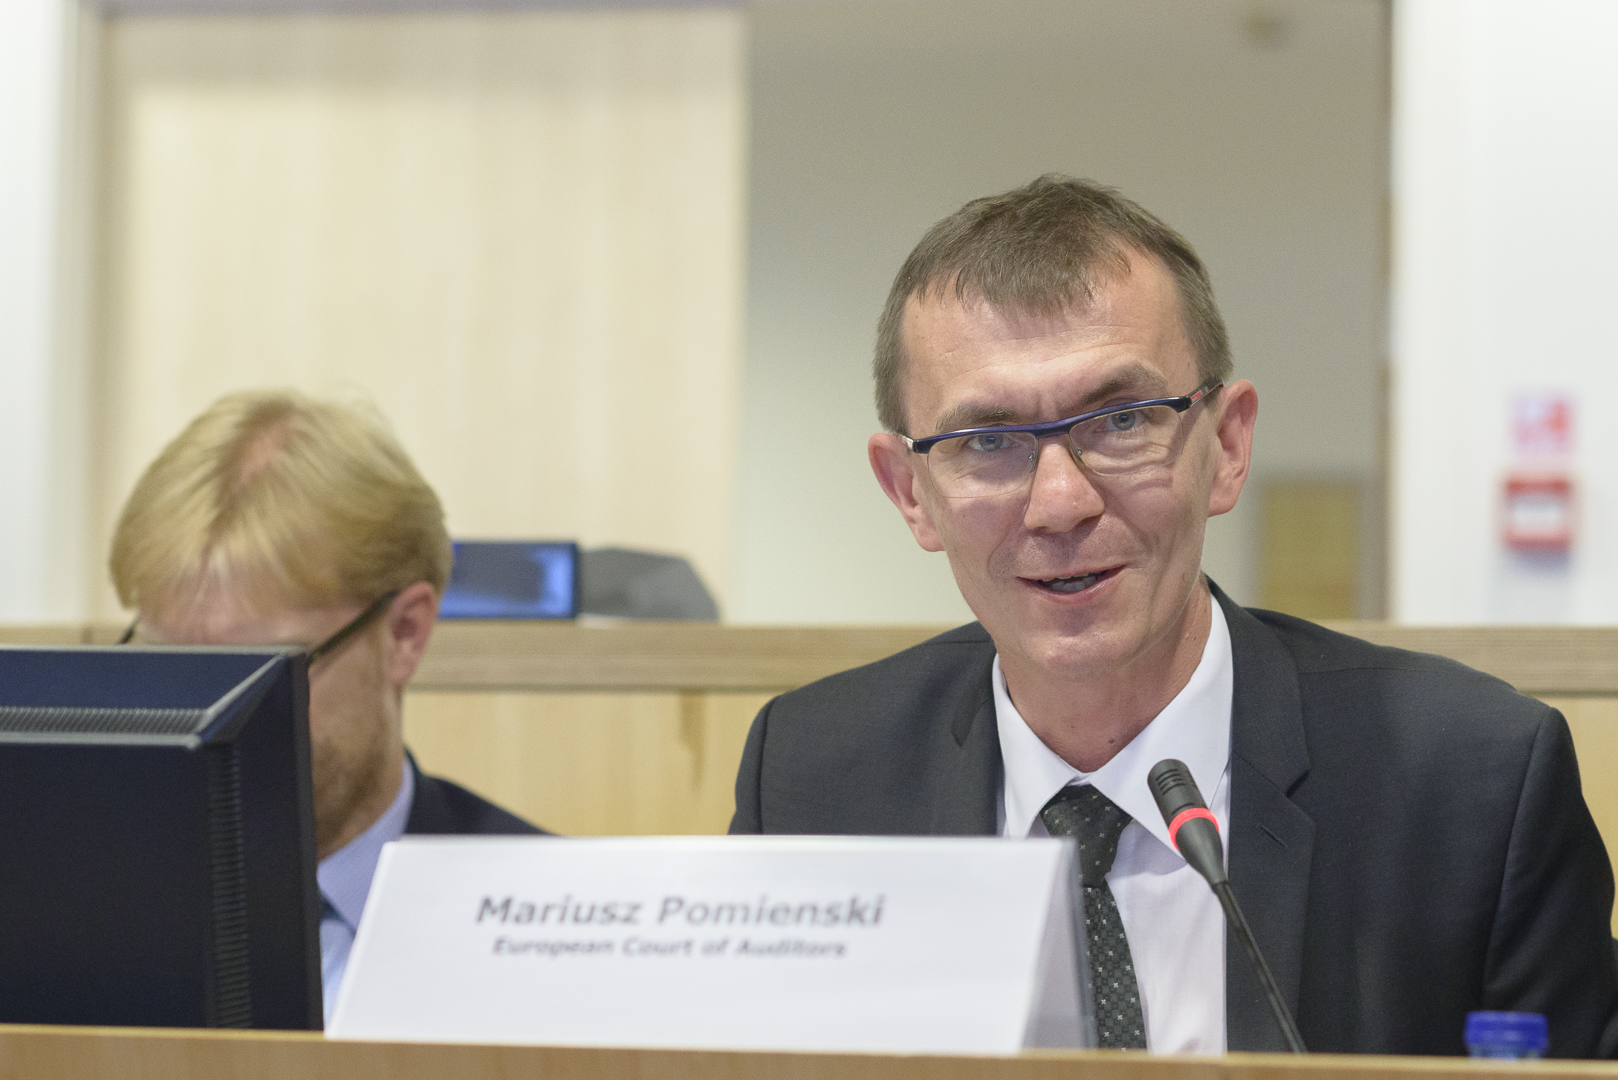 PUTTING EU LAW INTO PRACTICE CONFERENCE - Mariusz Pomienski, Director, ECA